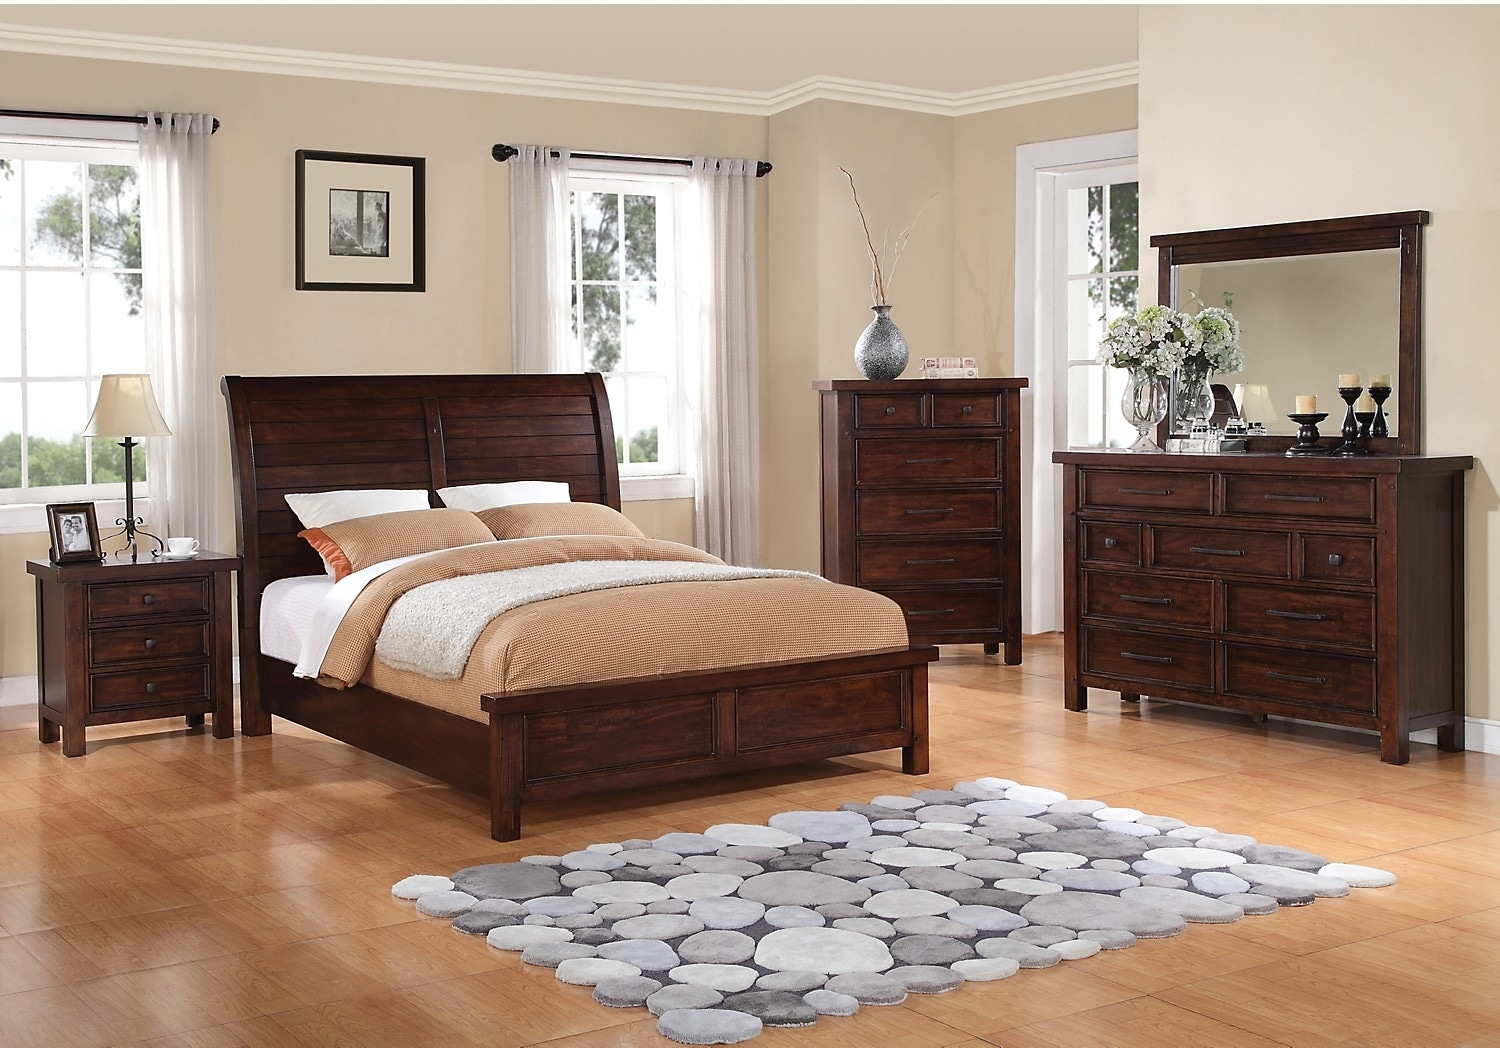 Bedroom Furniture - Sonoma 5-Piece Queen Bedroom Package - Dark Brown